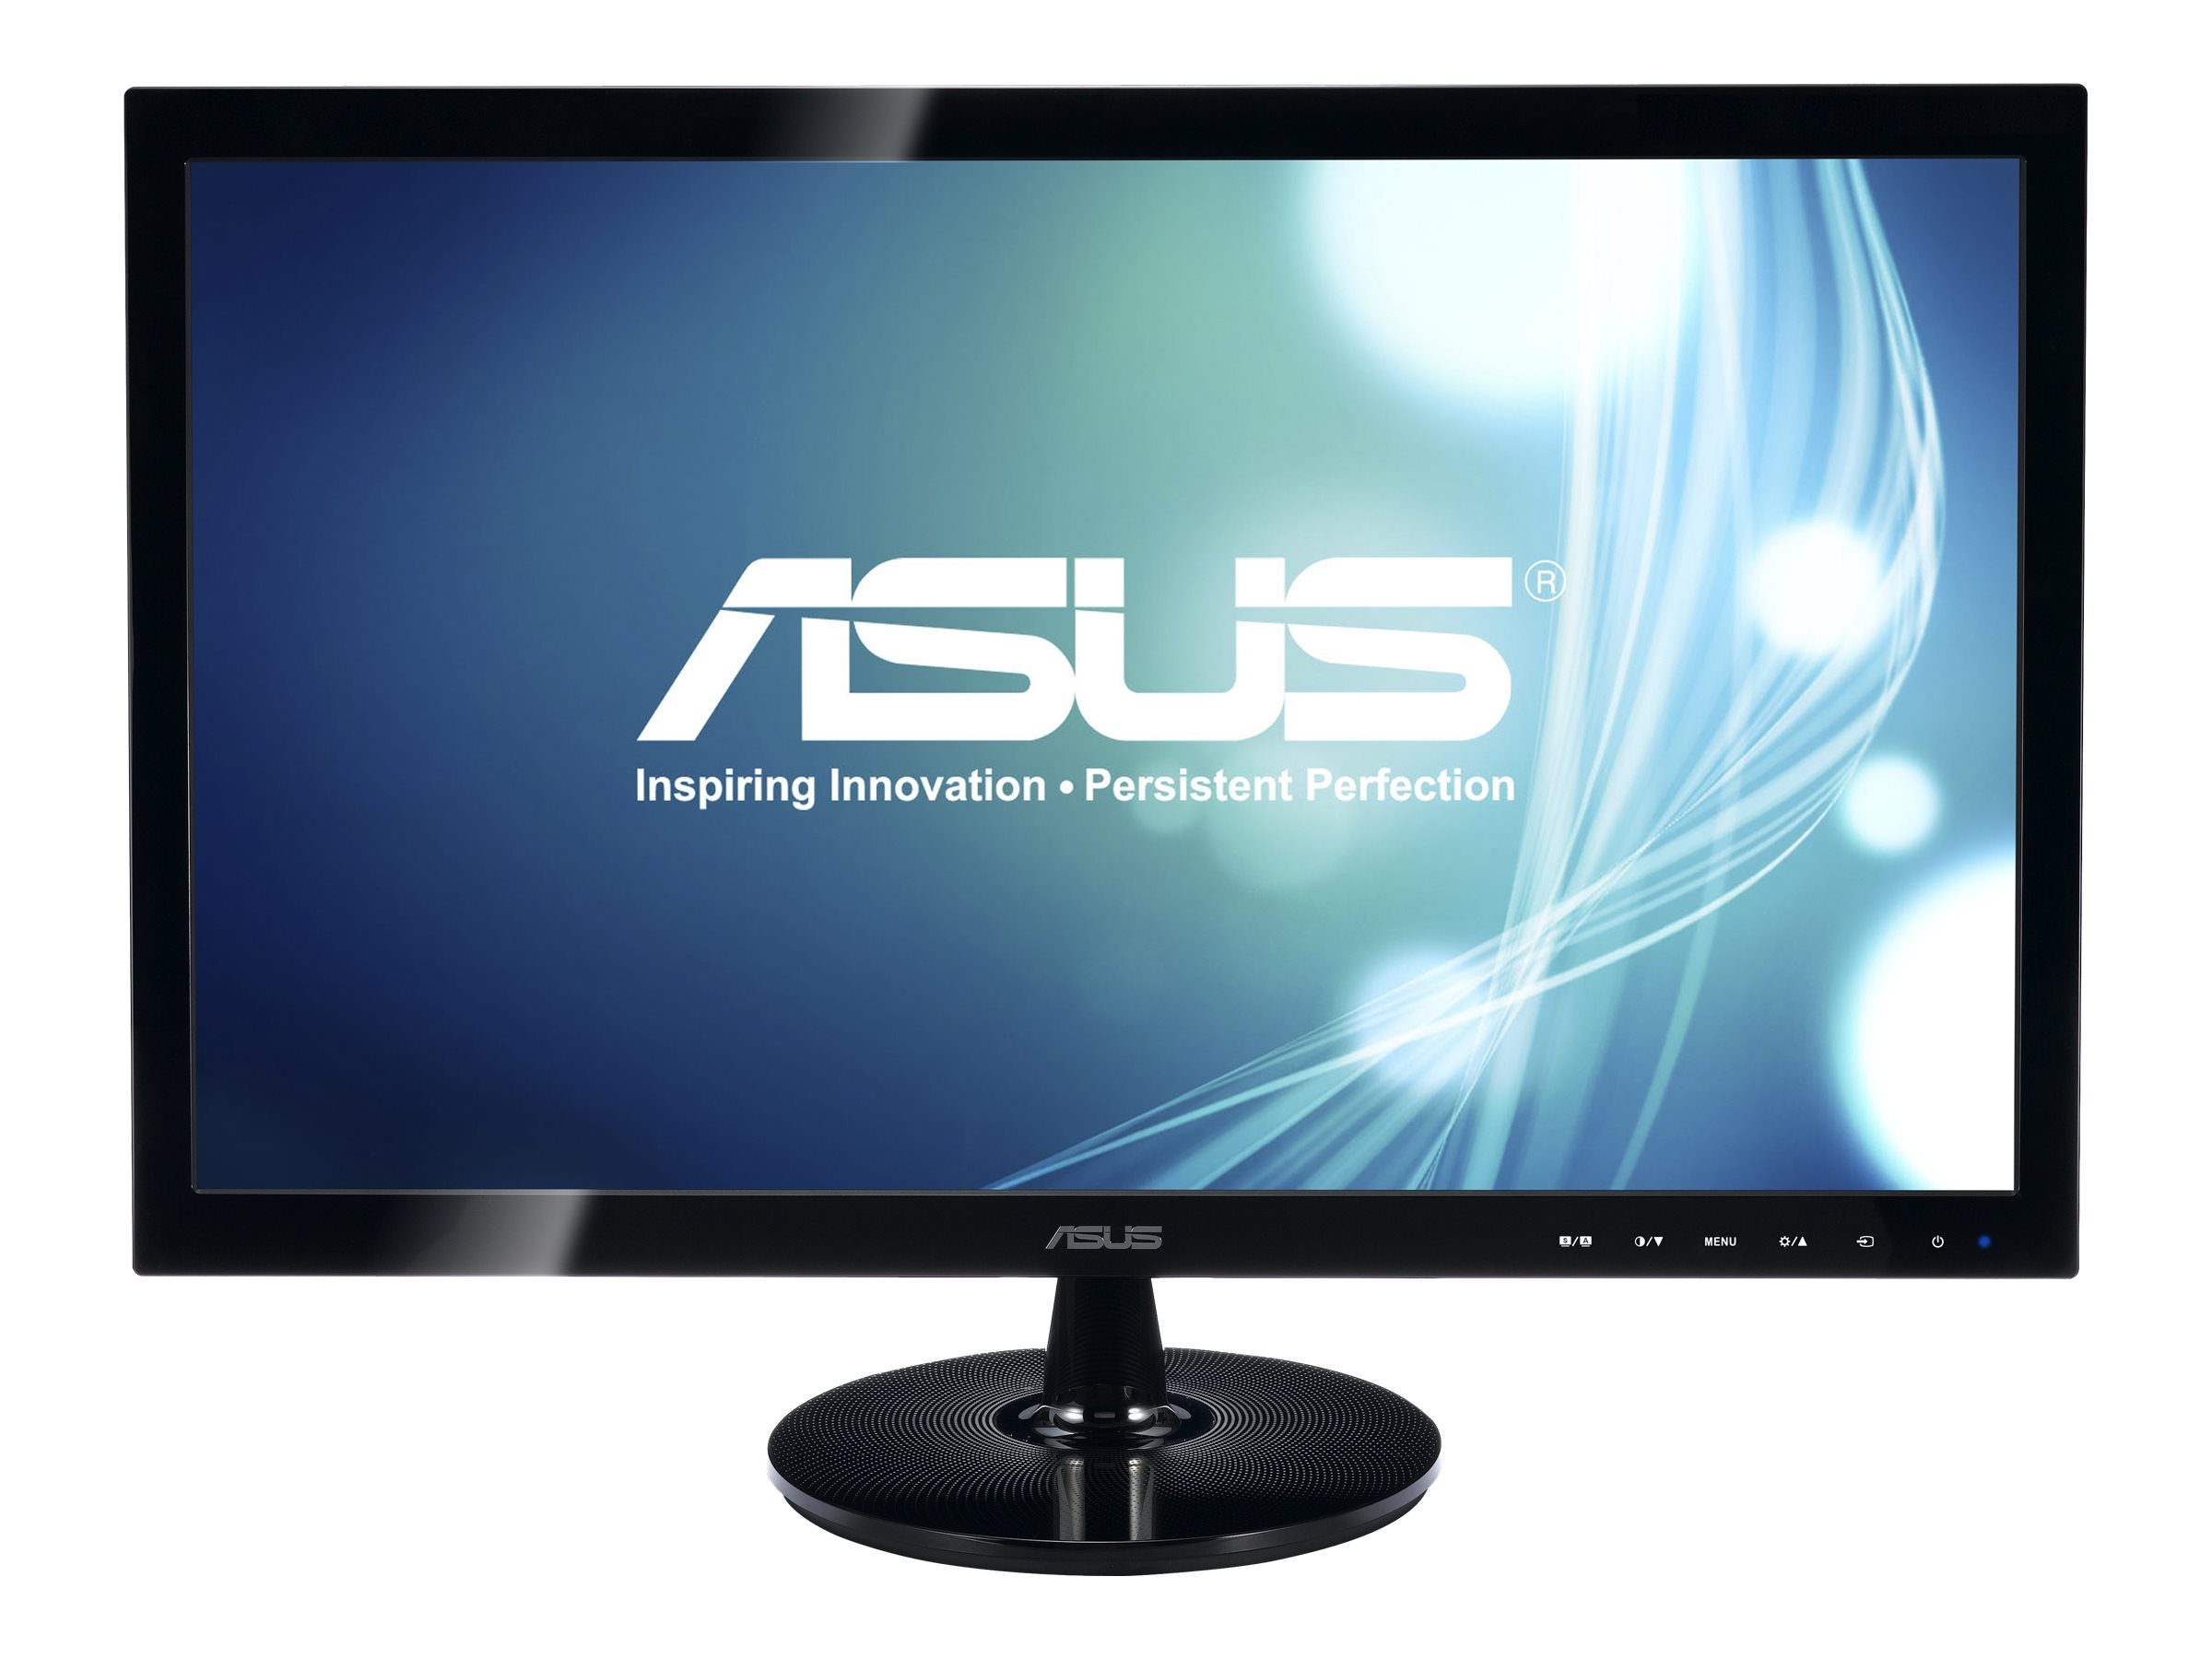 Asus 23 VS238H-P Full HD LED Monitor, Black